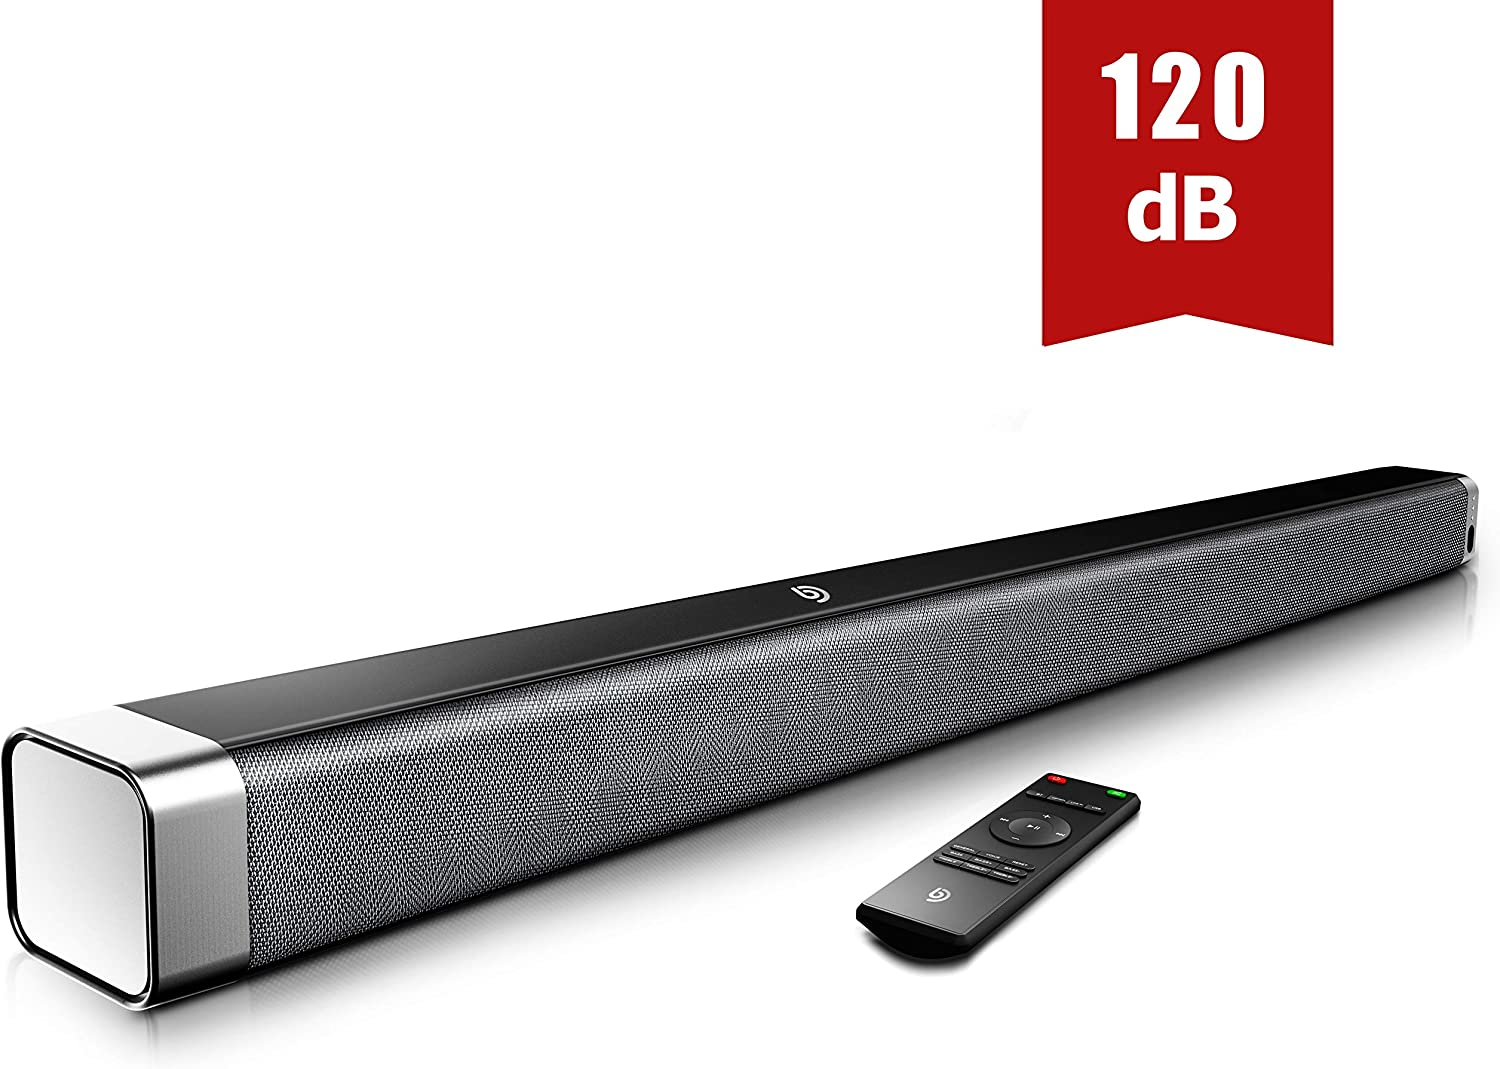 Bomaker Sound Bar, 37-Inch Home Theater TV Soundbar, 120dB, 4 Equalizer, Bass, Treble Adjustable, Wireless Bluetooth 5.0, Optical/AUX/RCA/USB Connection, Remote Control Included